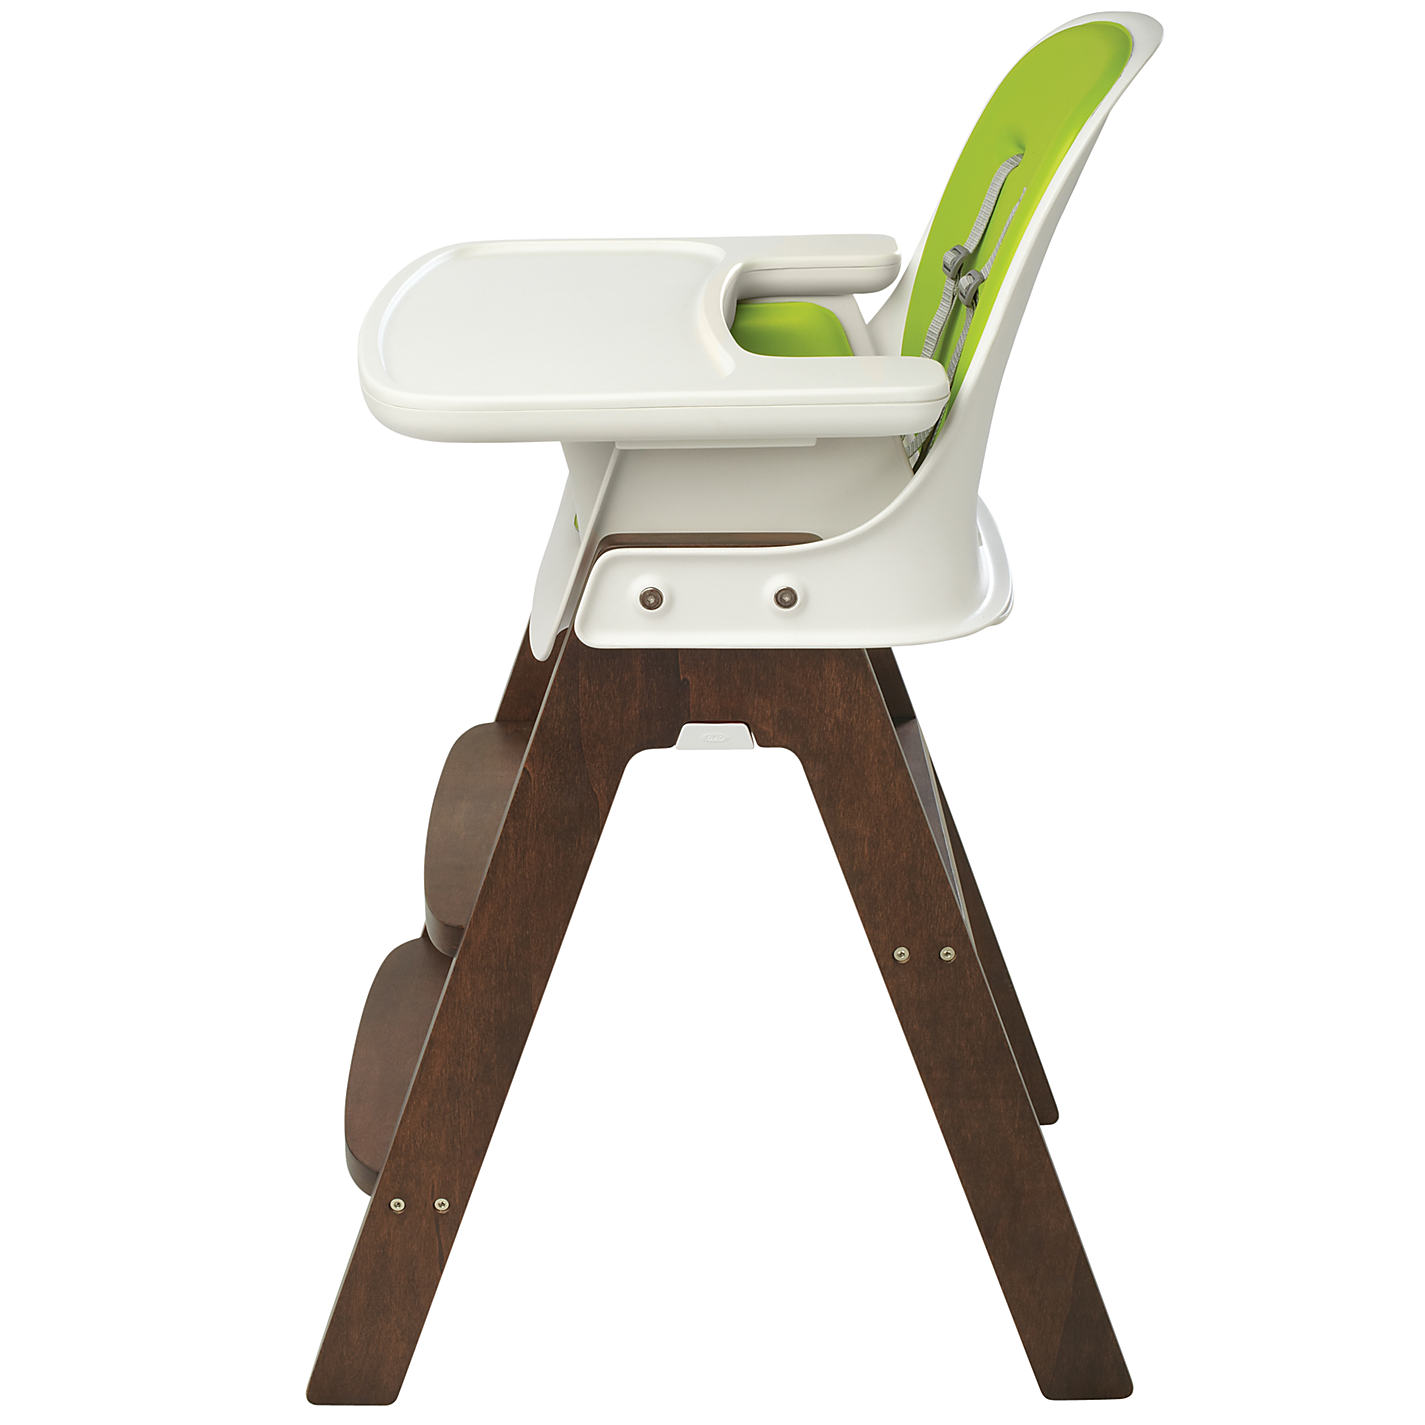 Buy OXO Tot Sprout Highchair Green Walnut